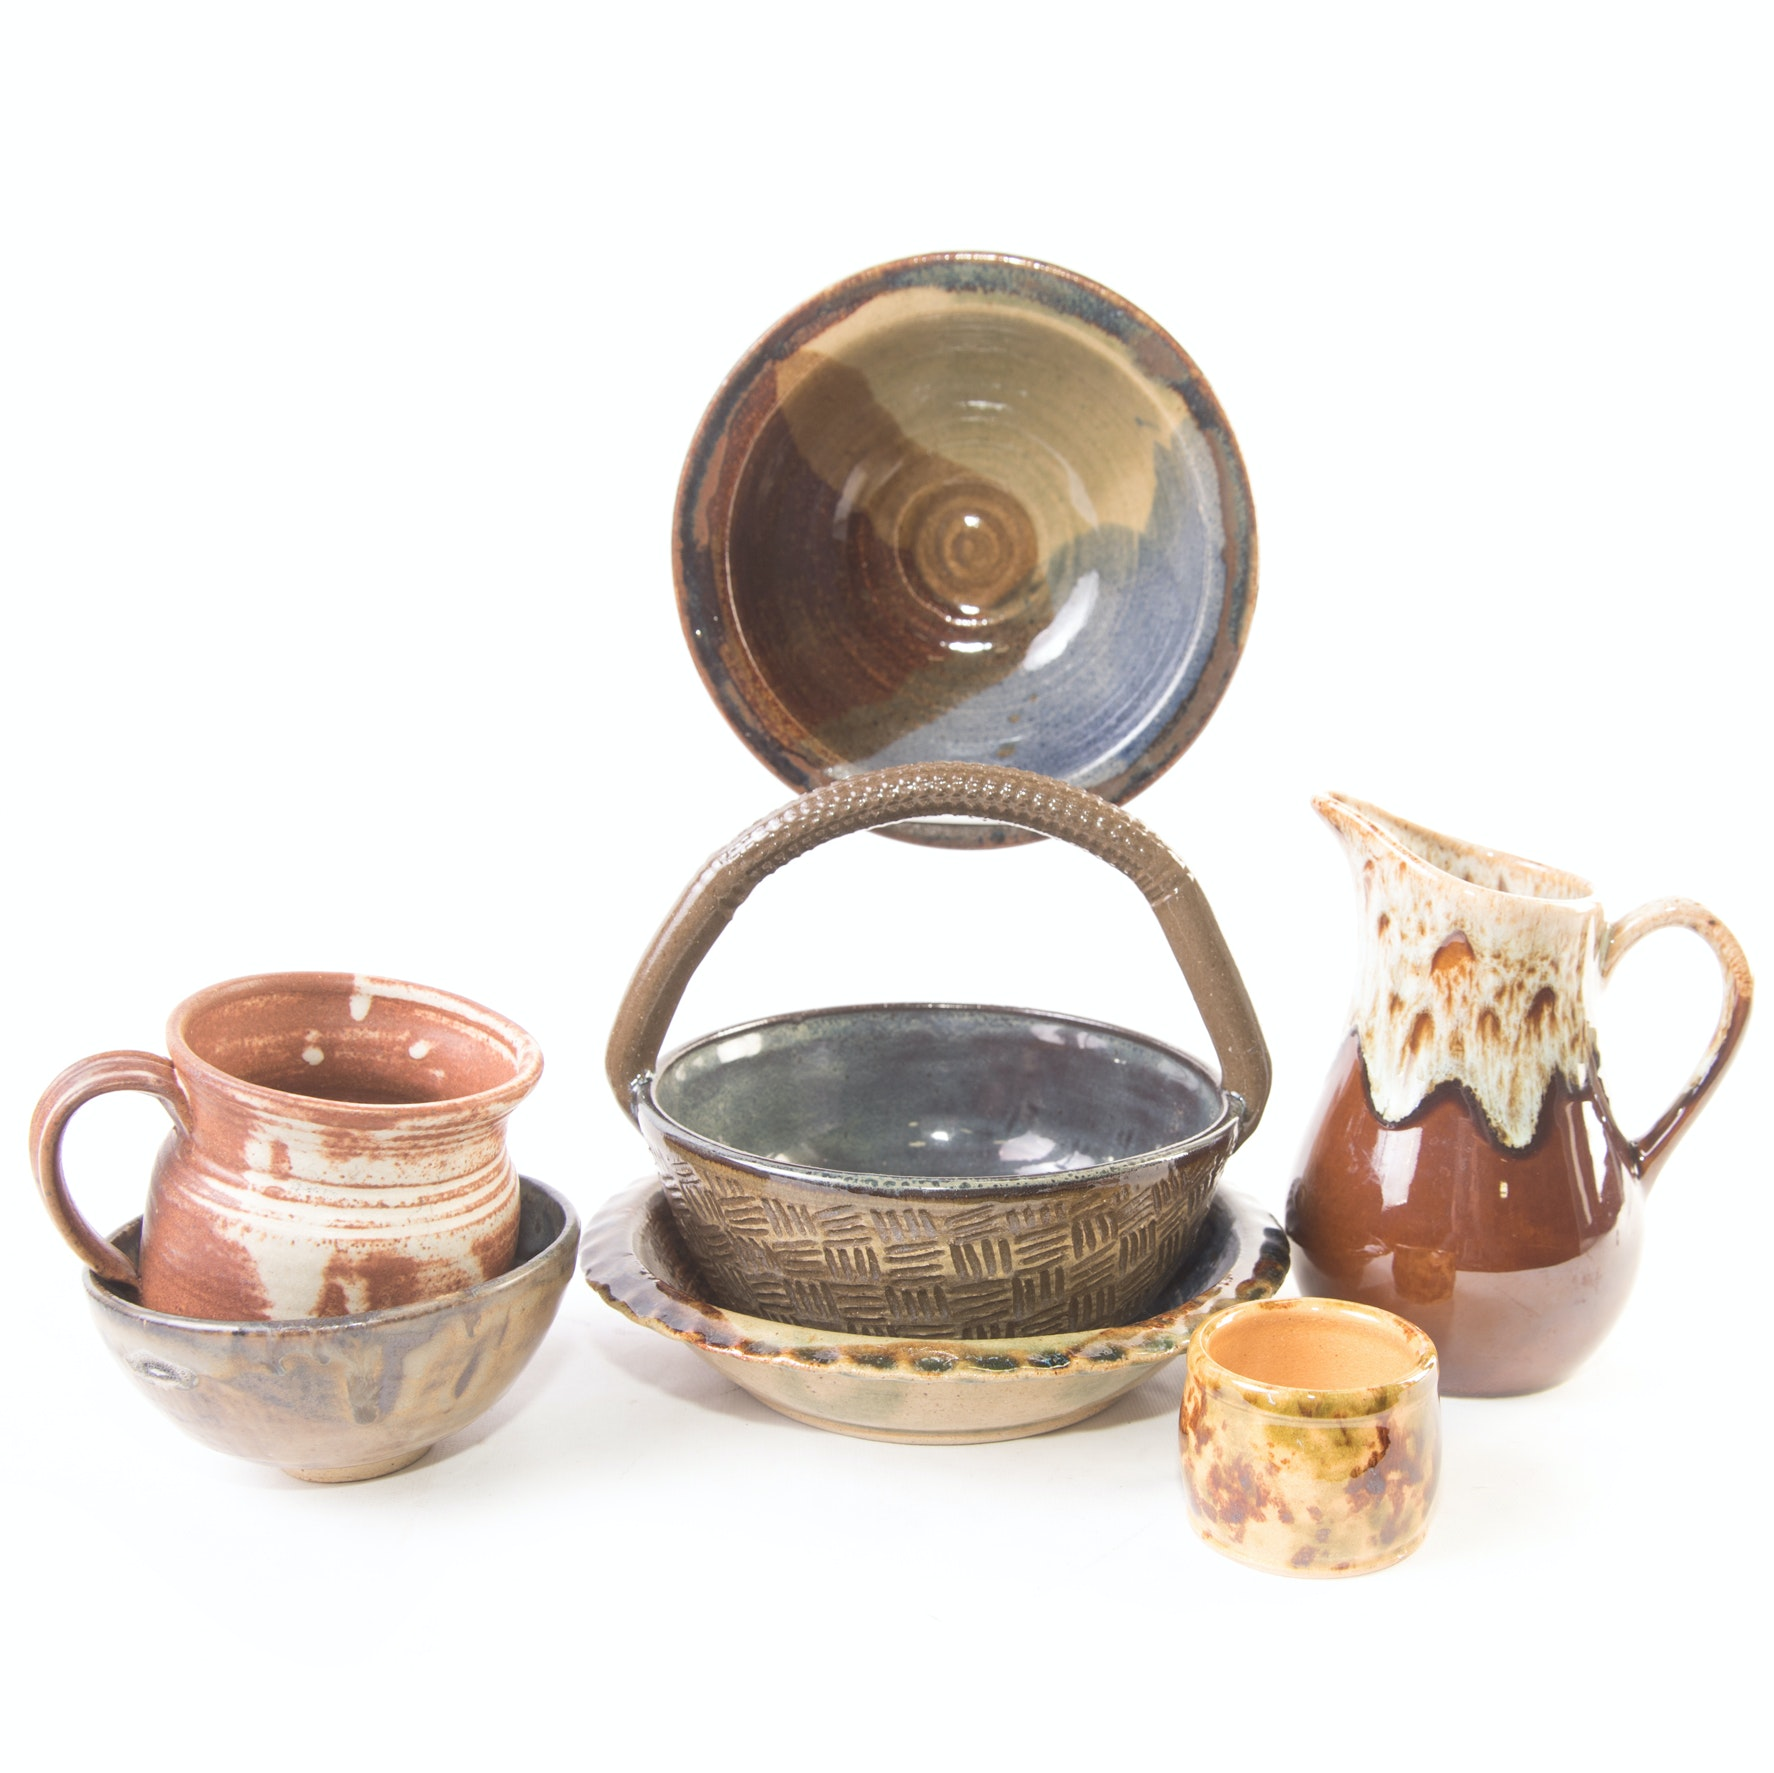 Art Pottery Bowls and Pitchers